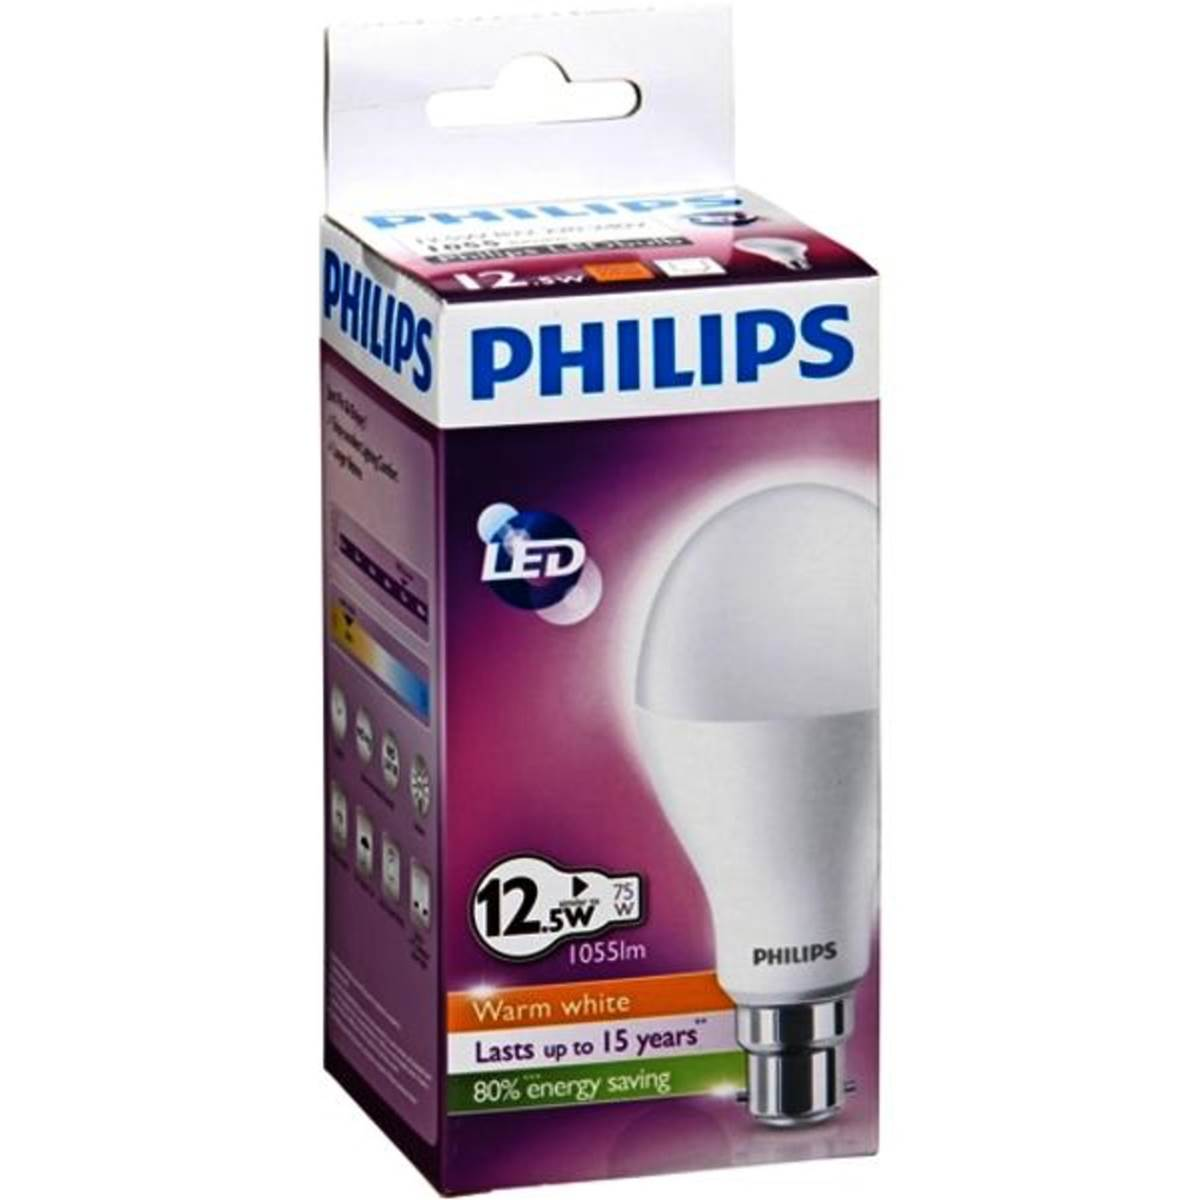 Woolworths Led Globes Philips Light Globe Led Bulb 1055lm B22 Each Woolworths